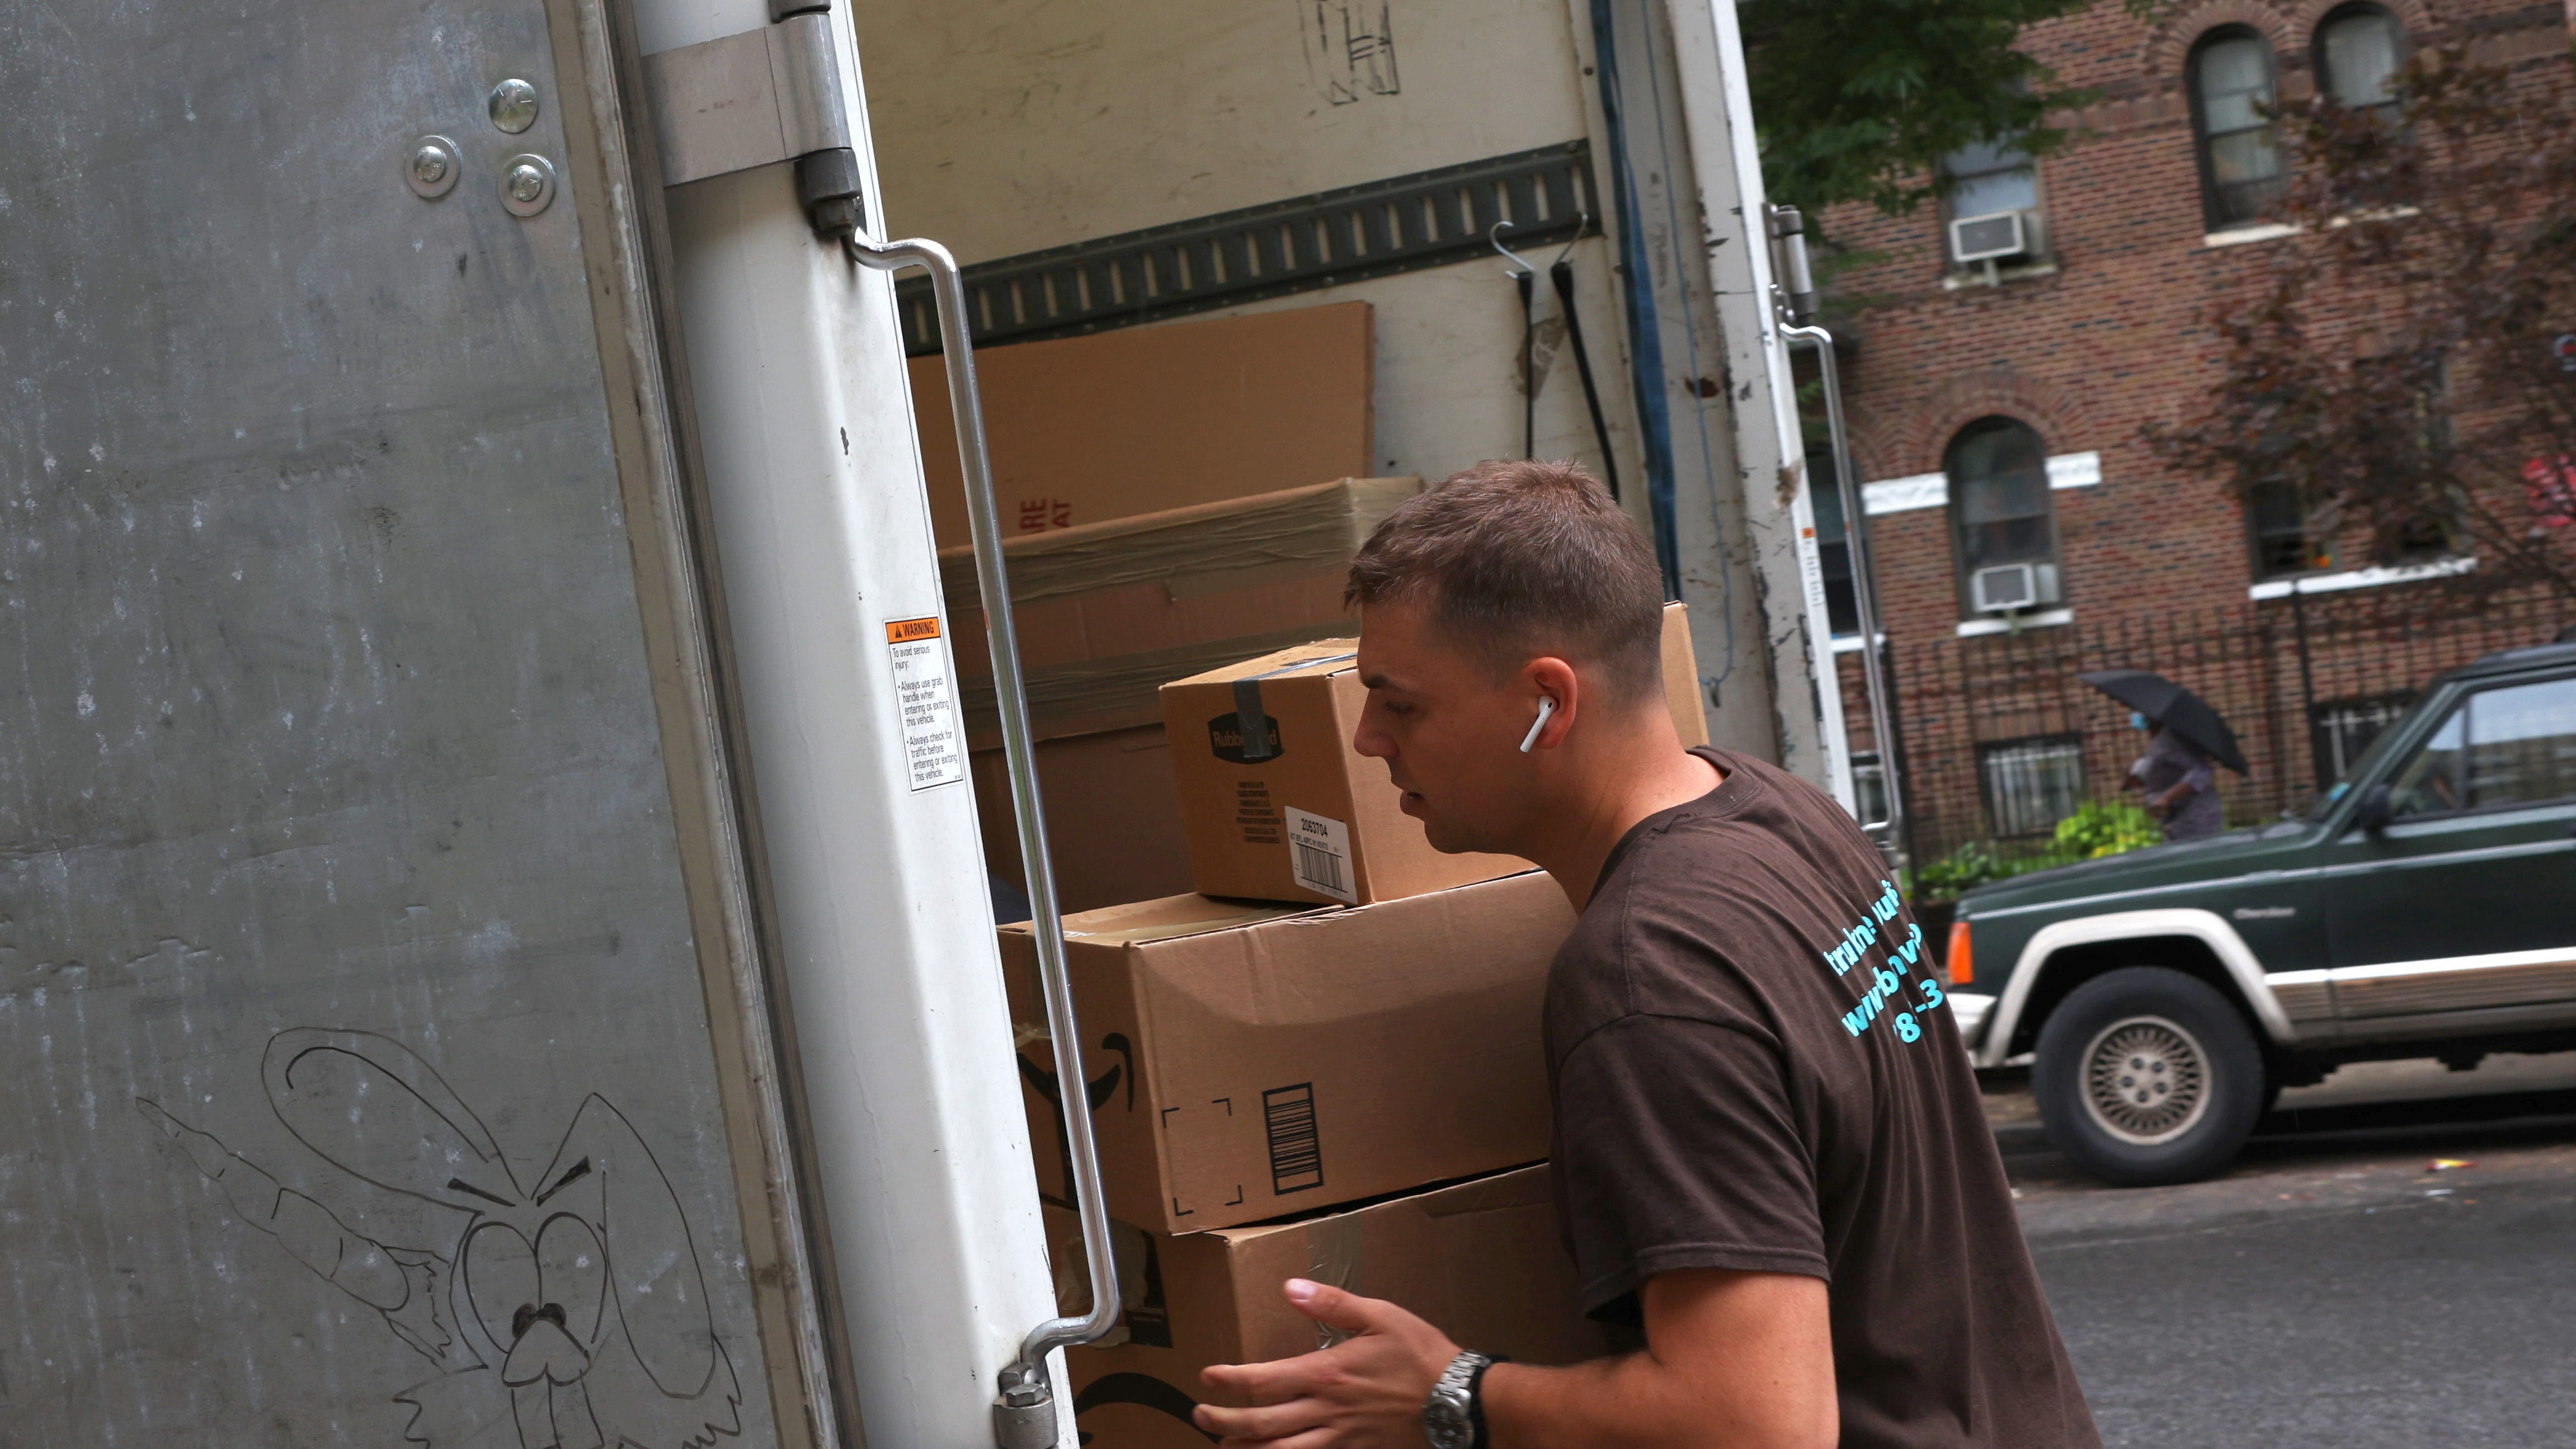 Dusan B., a mover with Rabbit Movers, places the belongings of a customer onto a moving truck on August 13 in New York City.